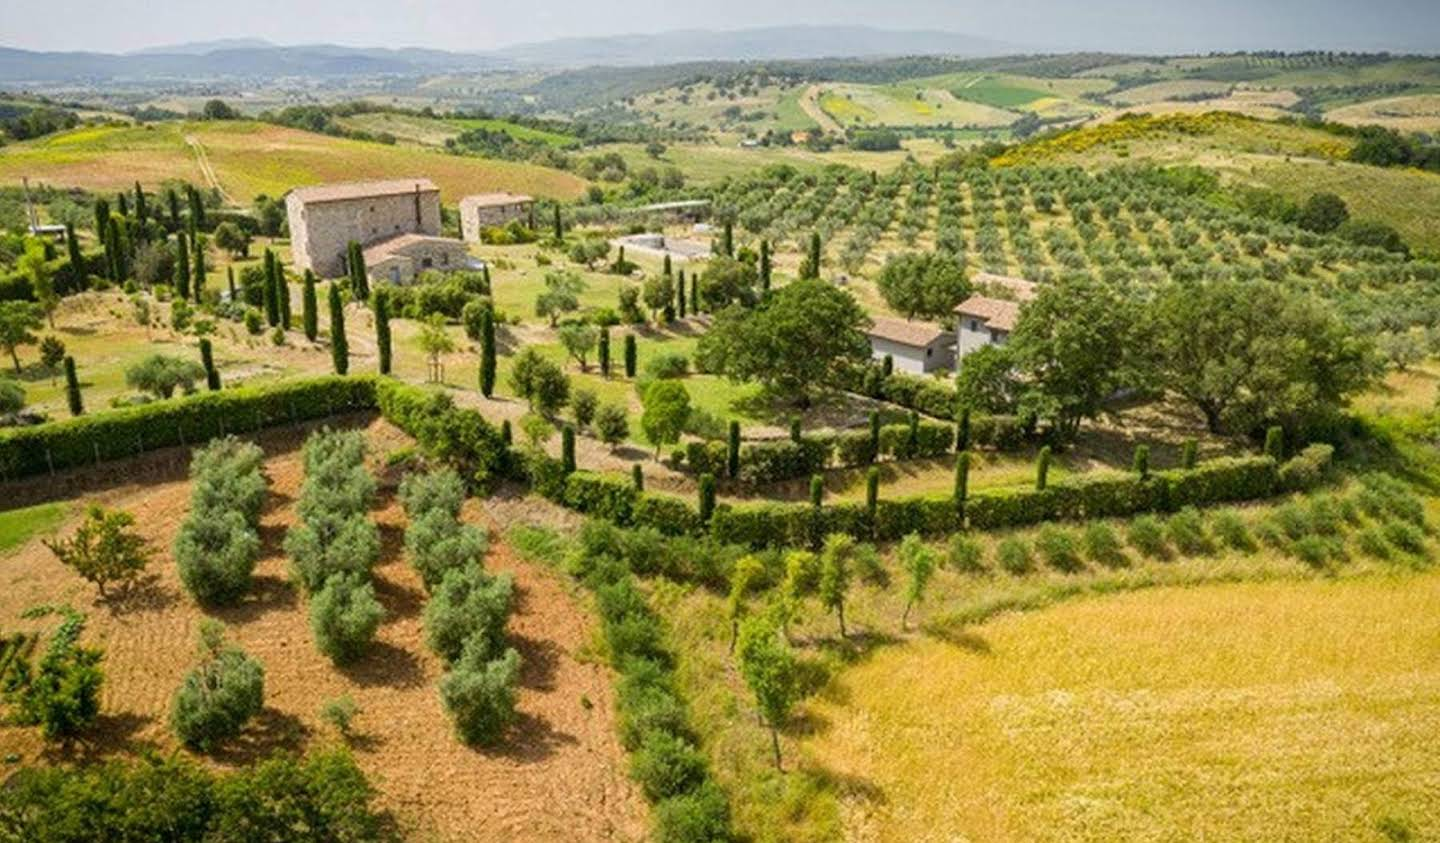 Villa with garden and terrace Magliano in Toscana